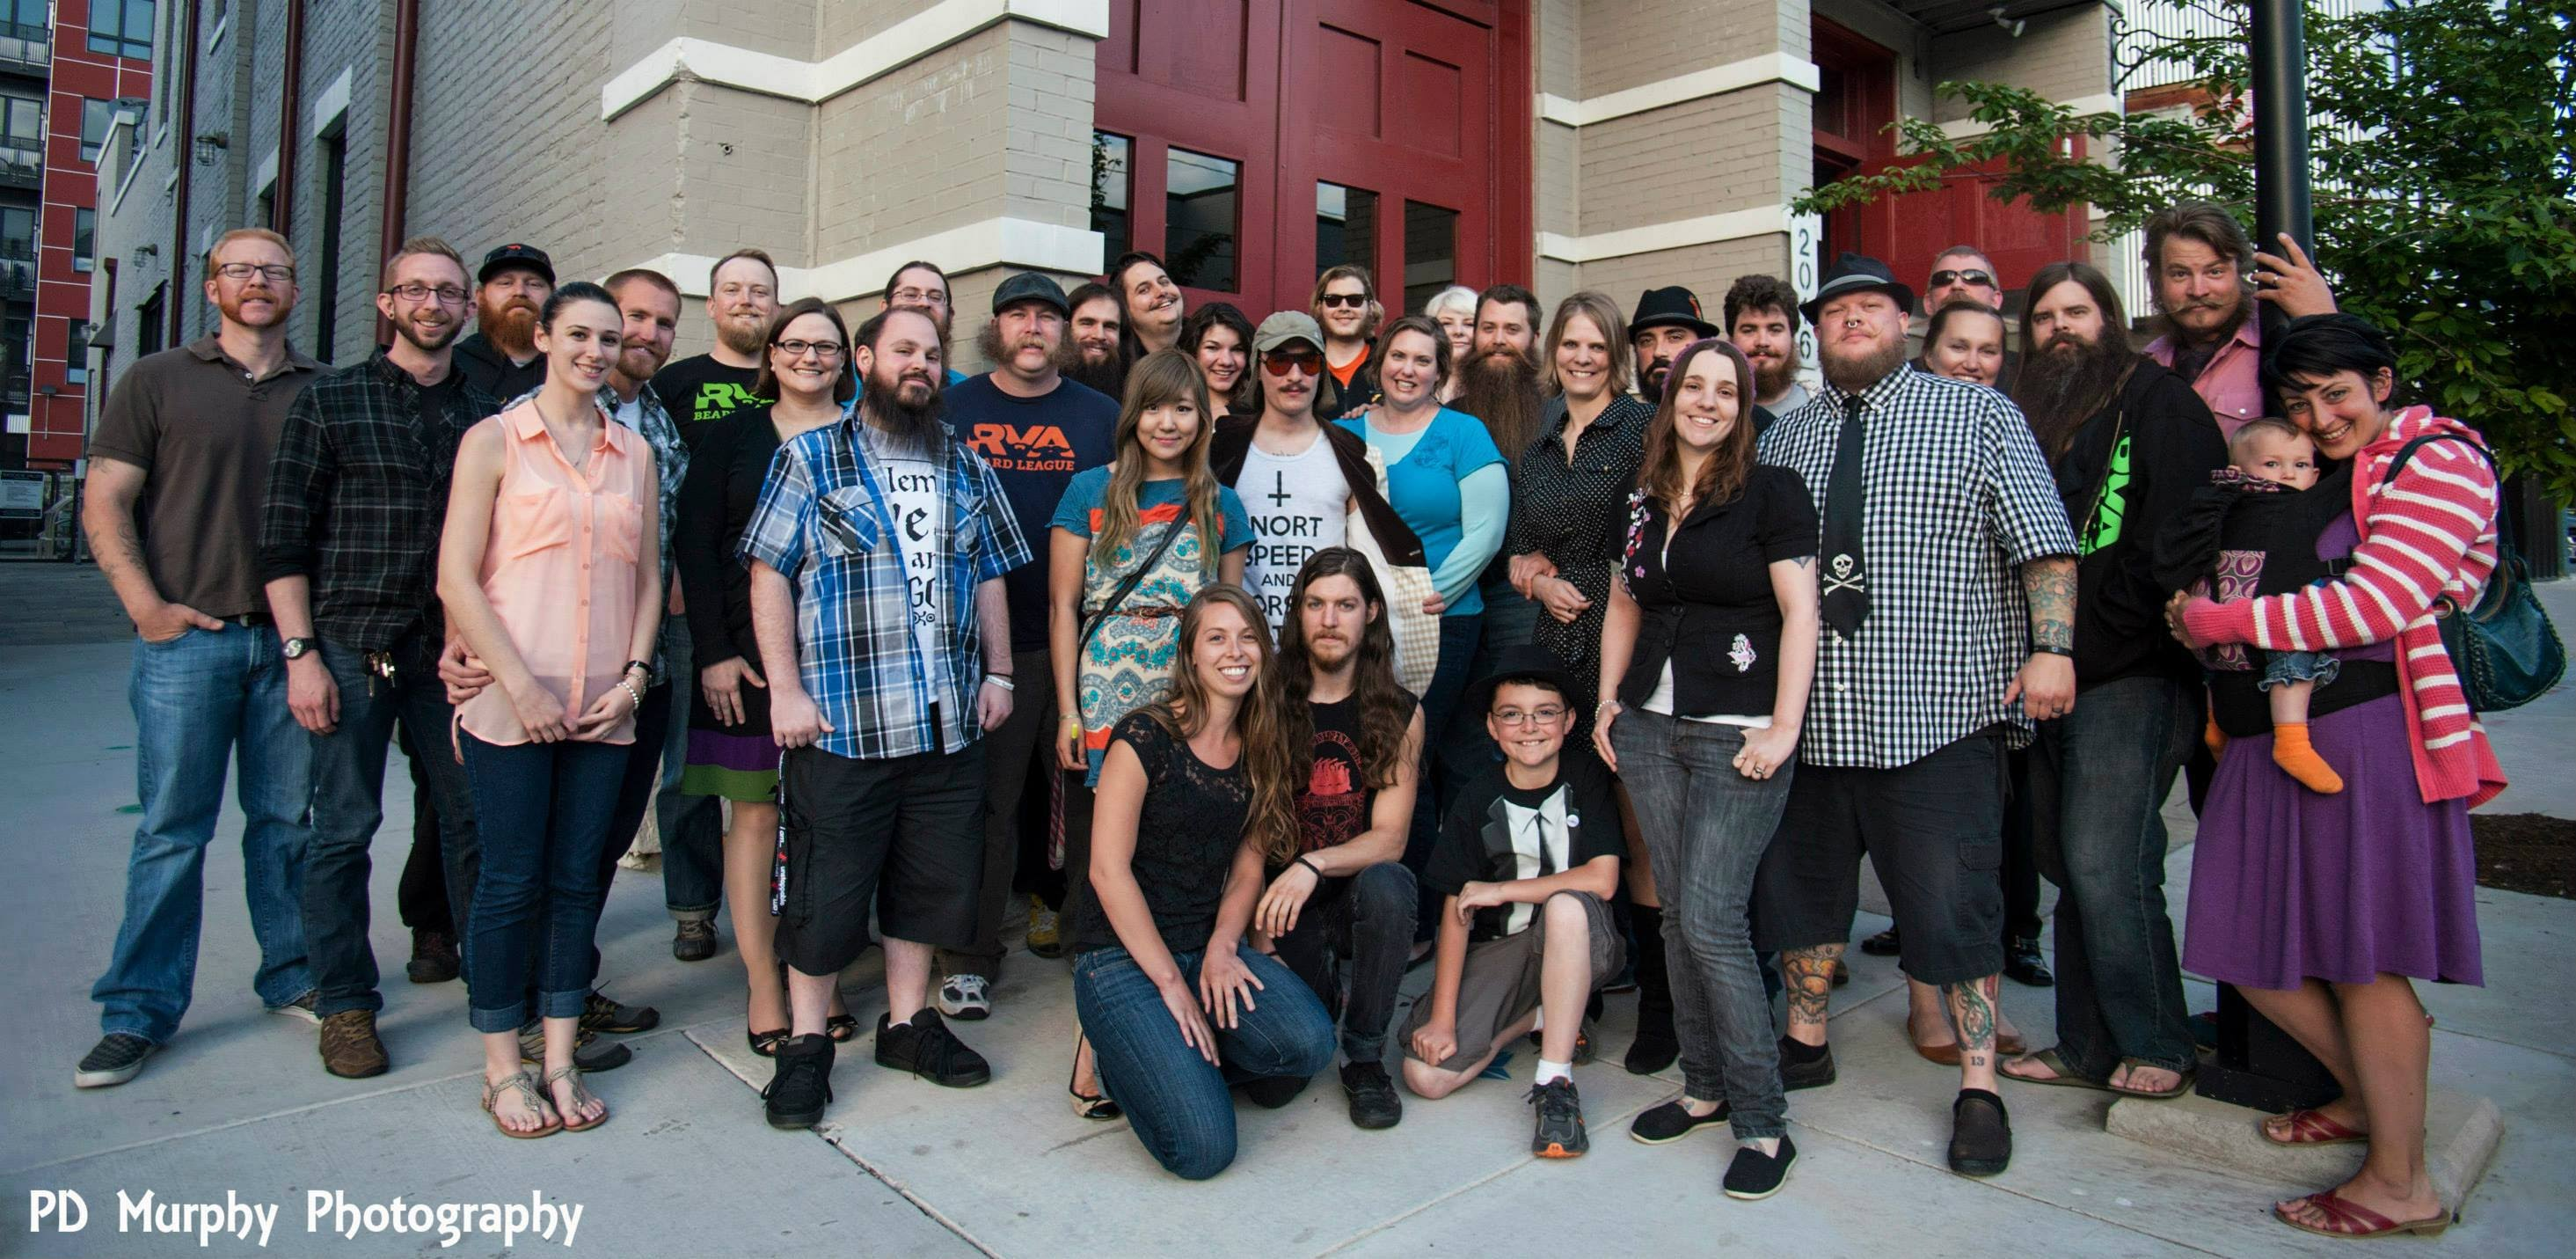 Group Shot from our May 2013 Pub Night